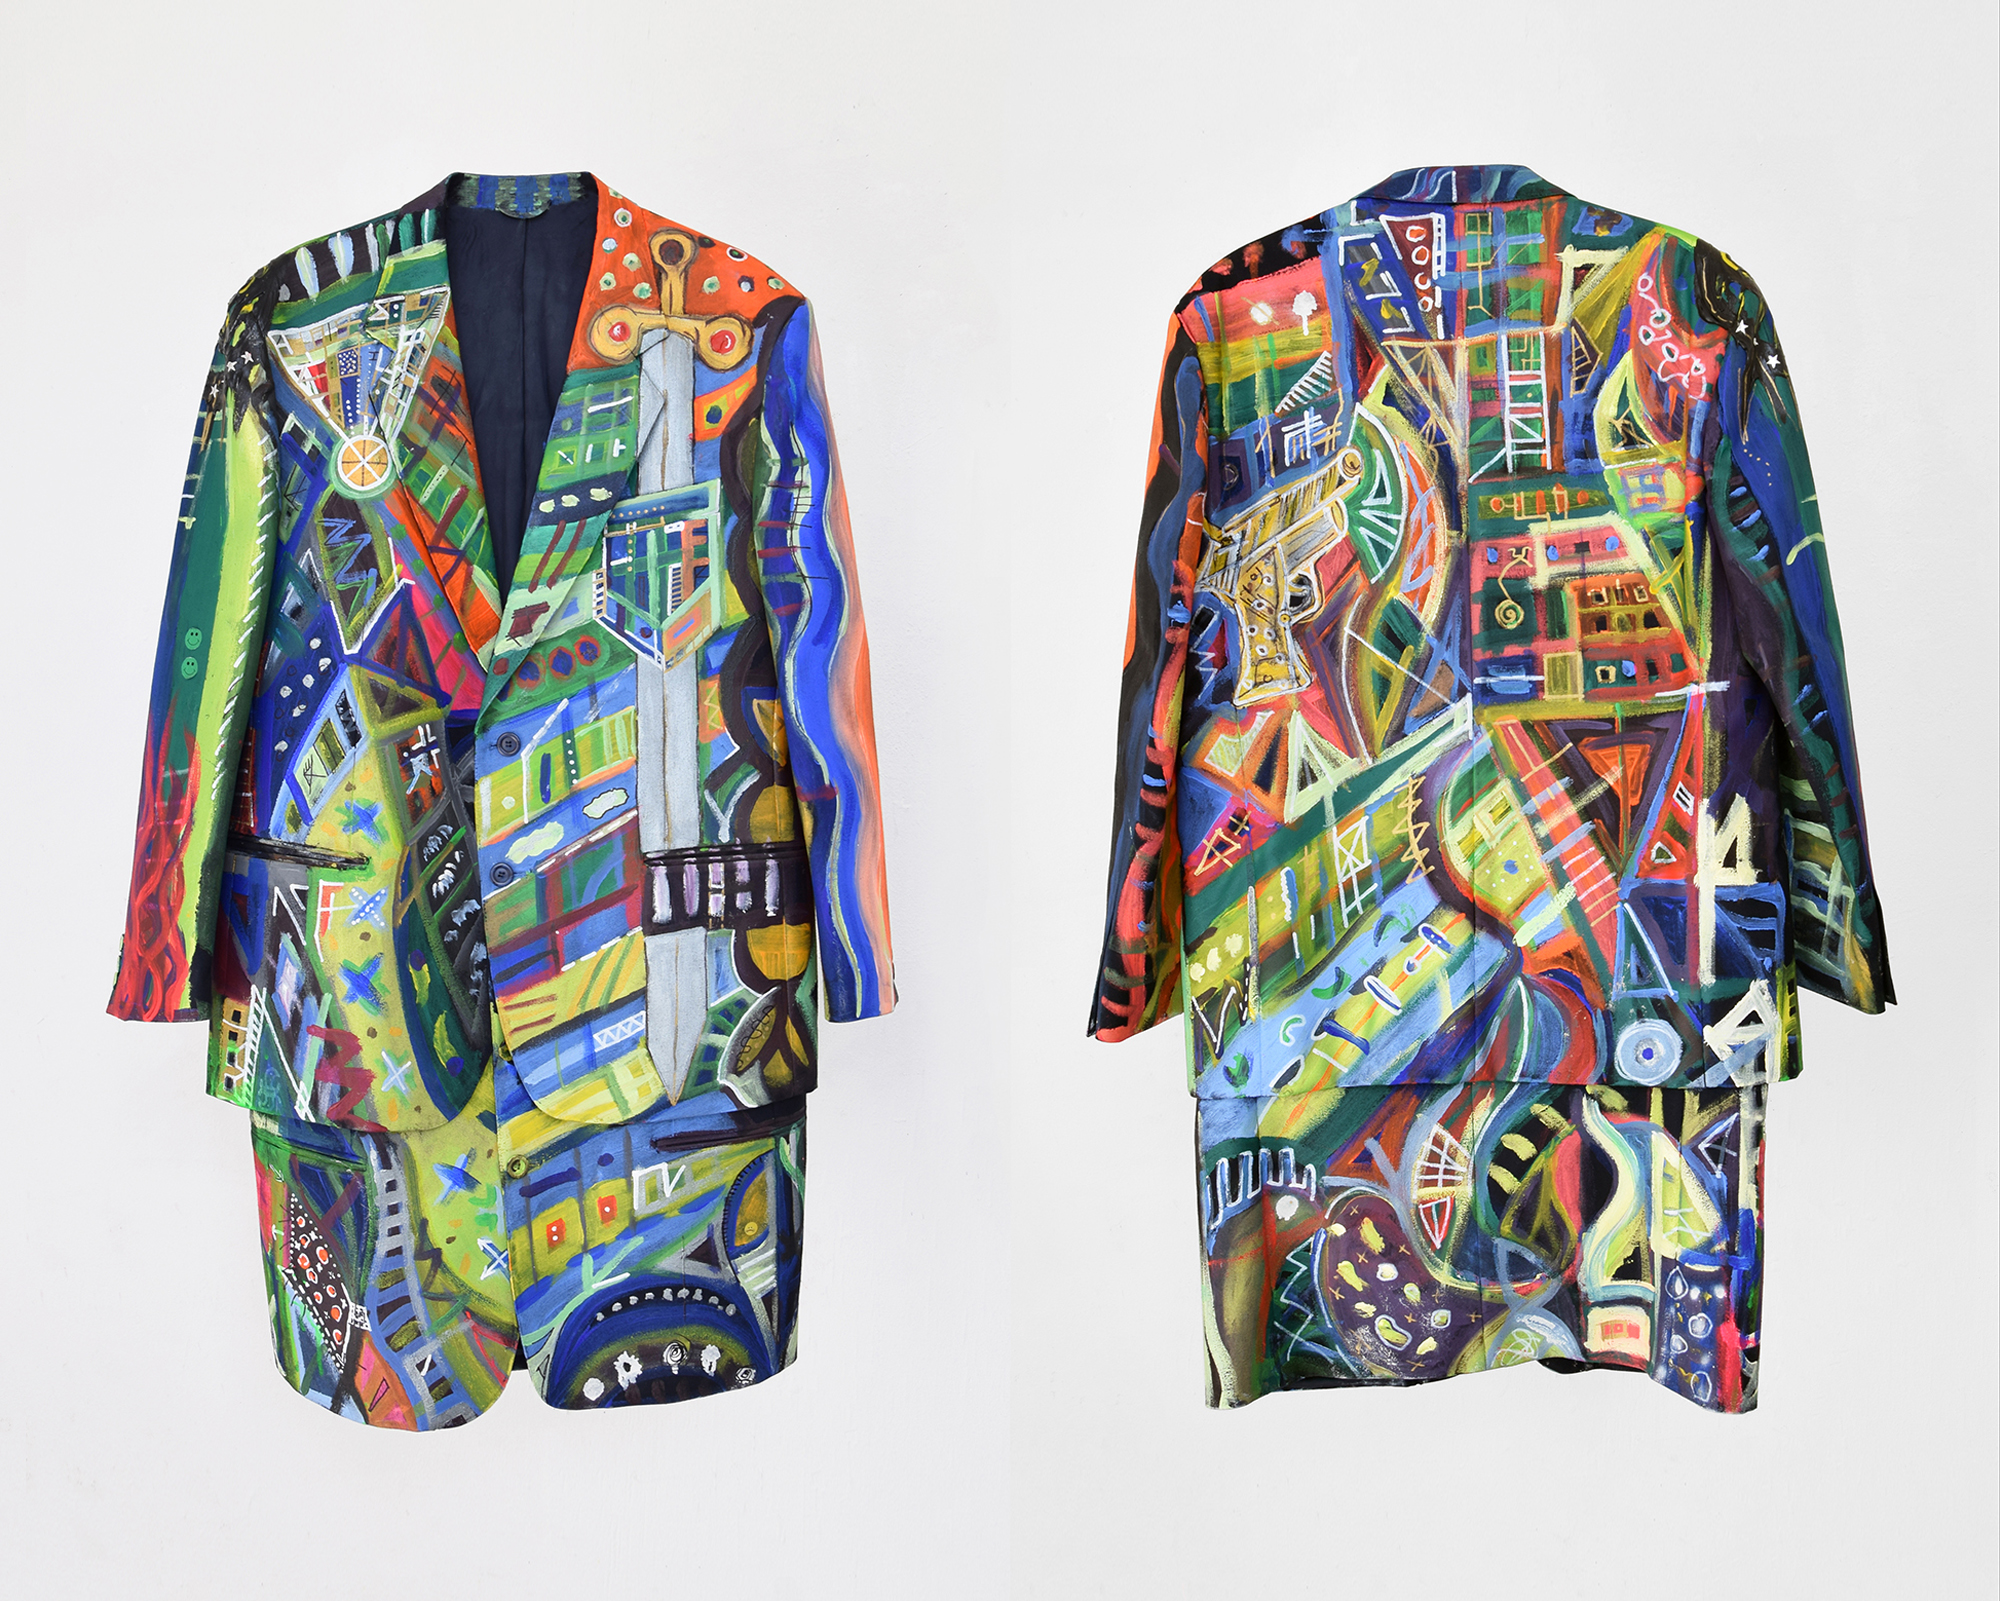 Vestito di Luce, Suit of Lights, UPO, unidentified performing object